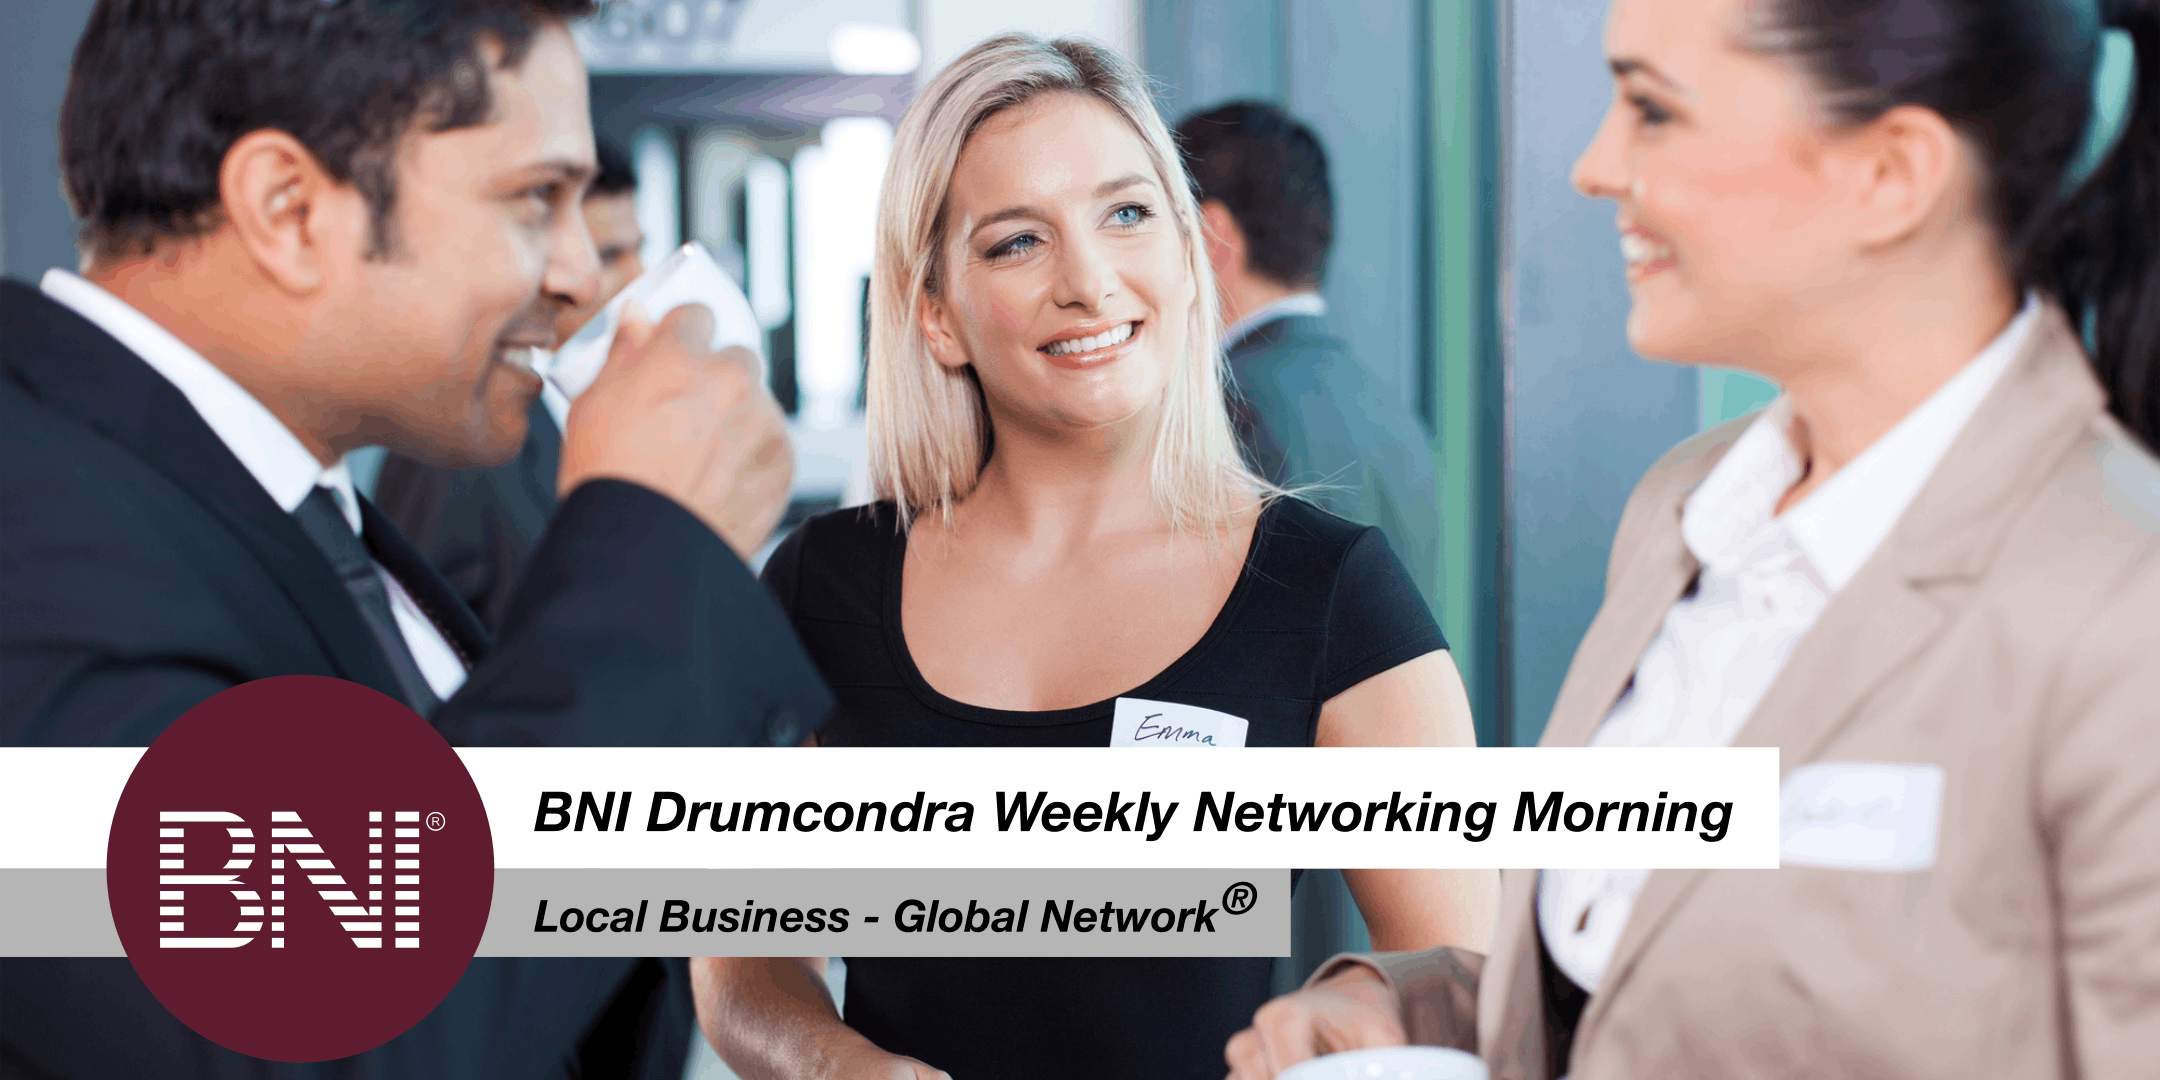 BNI Drumcondra Weekly Business Networking Meeting at Croke Park